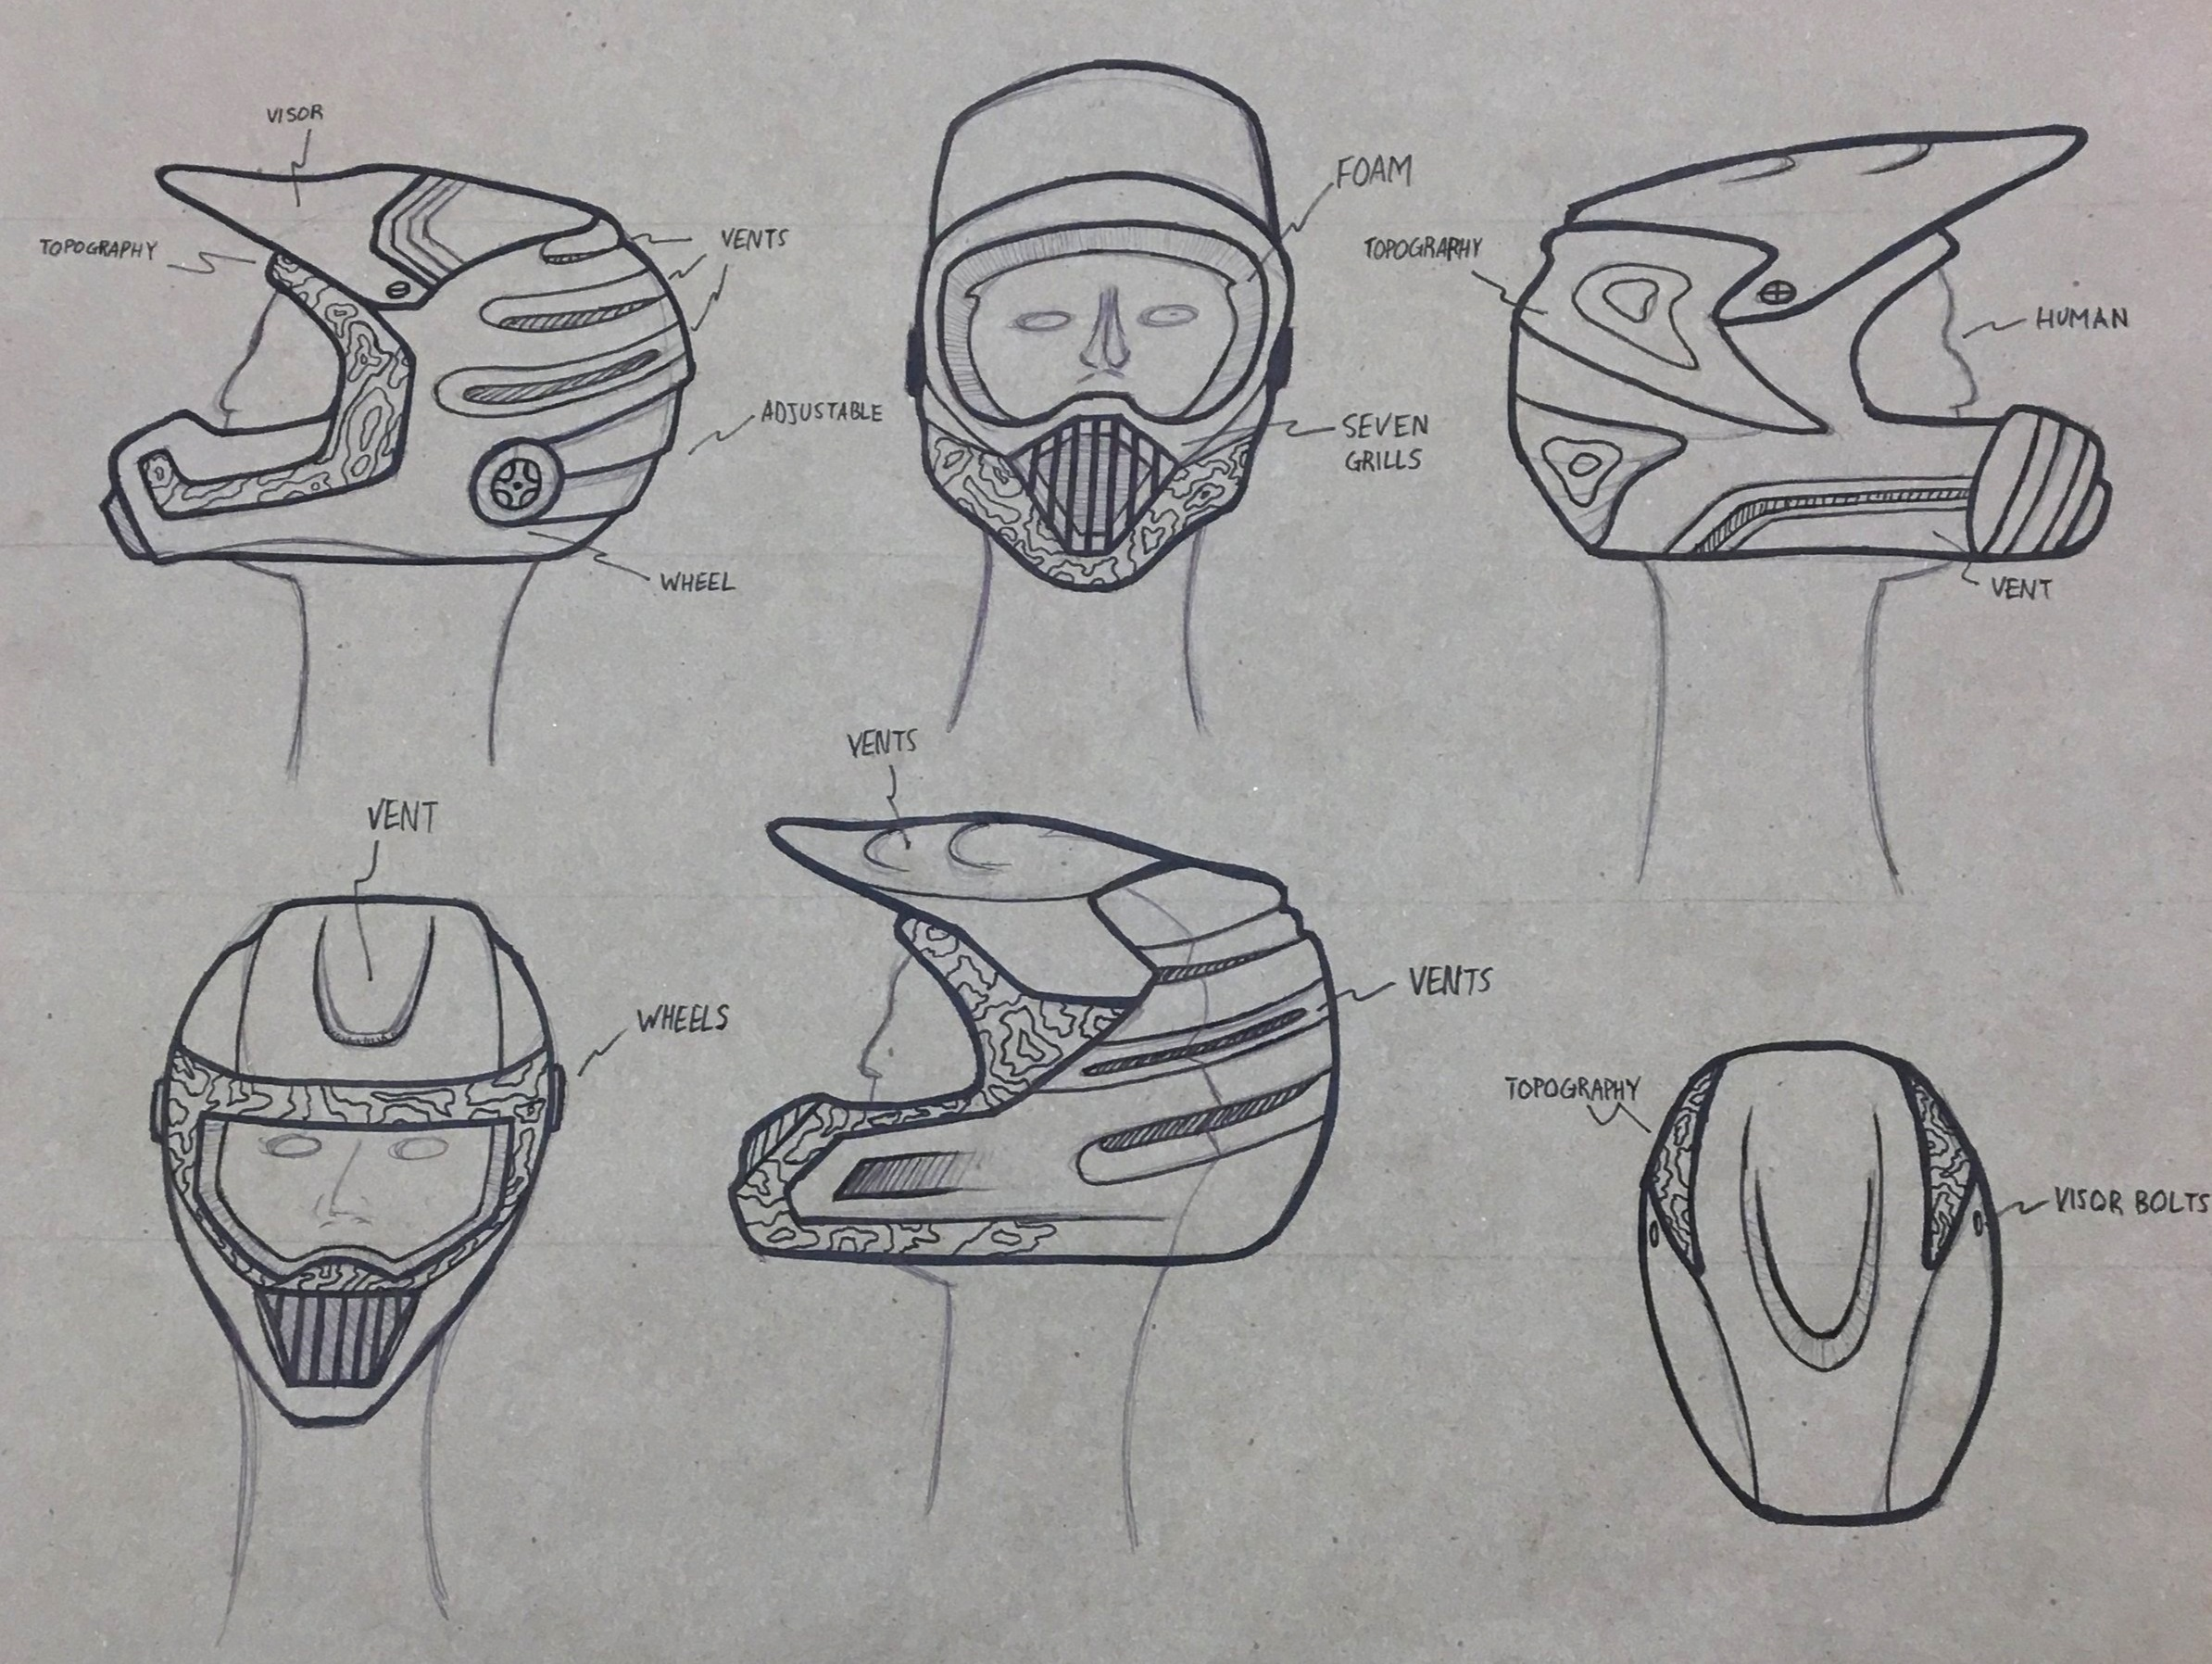 Ideation - In these sketches vent styling and helmet cmf was explored.